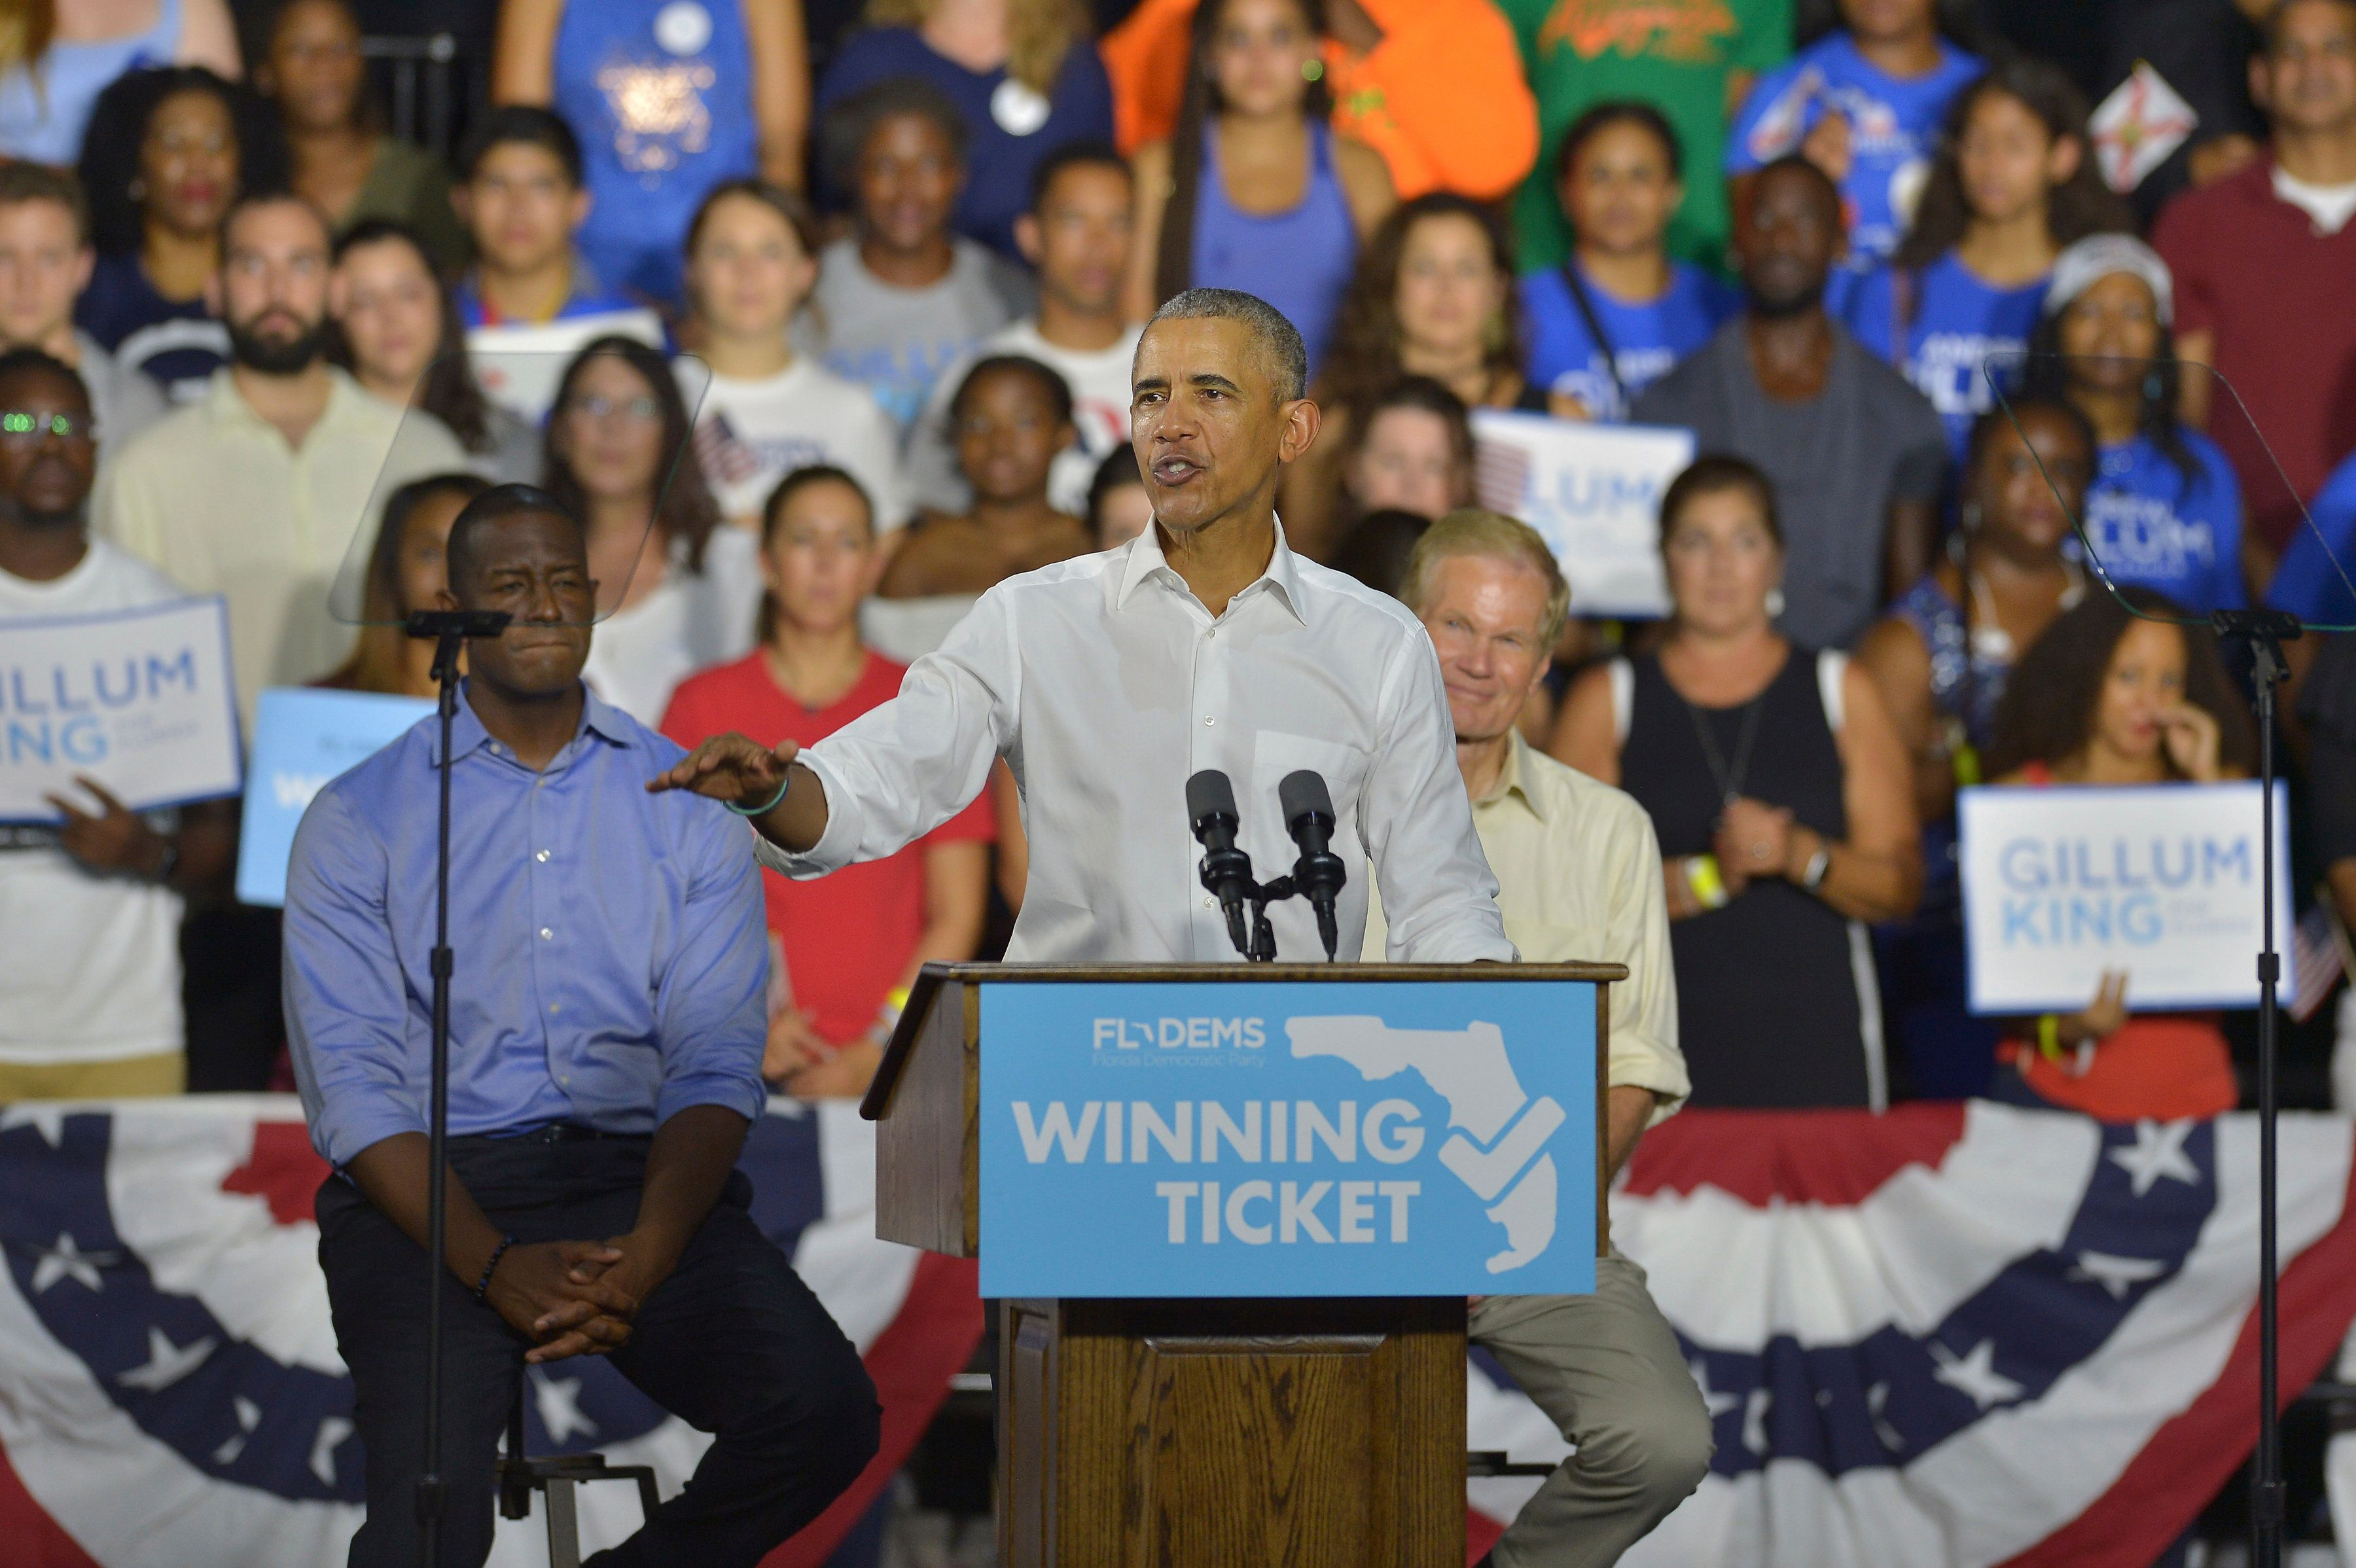 MIAMI, FLORIDA - NOVEMBER 02: Former U.S. President Barack Obama speaks during a rally to support Florida Democratic gubernatorial candidate Andrew Gillum and U.S. Senator Bill Nelson (D-FL) at the Ice Palace film studios on November 02, 2018 in Miami, Florida. Senator Nelson (D-FL) and candidate Andrew Gillum are in tight races against their Republican opponents. Credit: MPI10 / MediaPunch /IPX